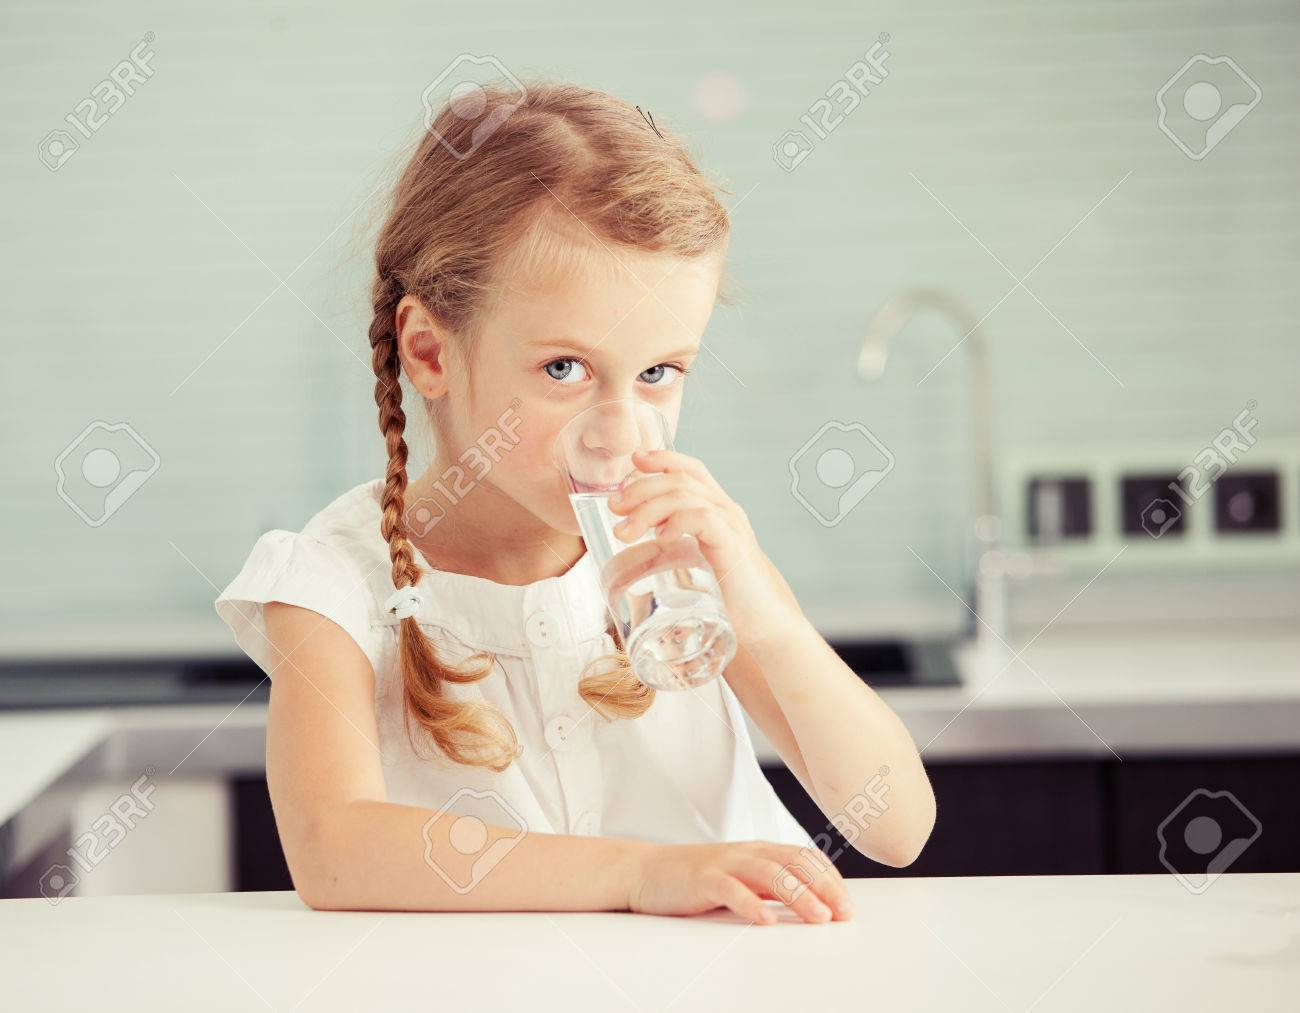 Child drinking water from glass. Happy little girl at home in kitchen - 58898527